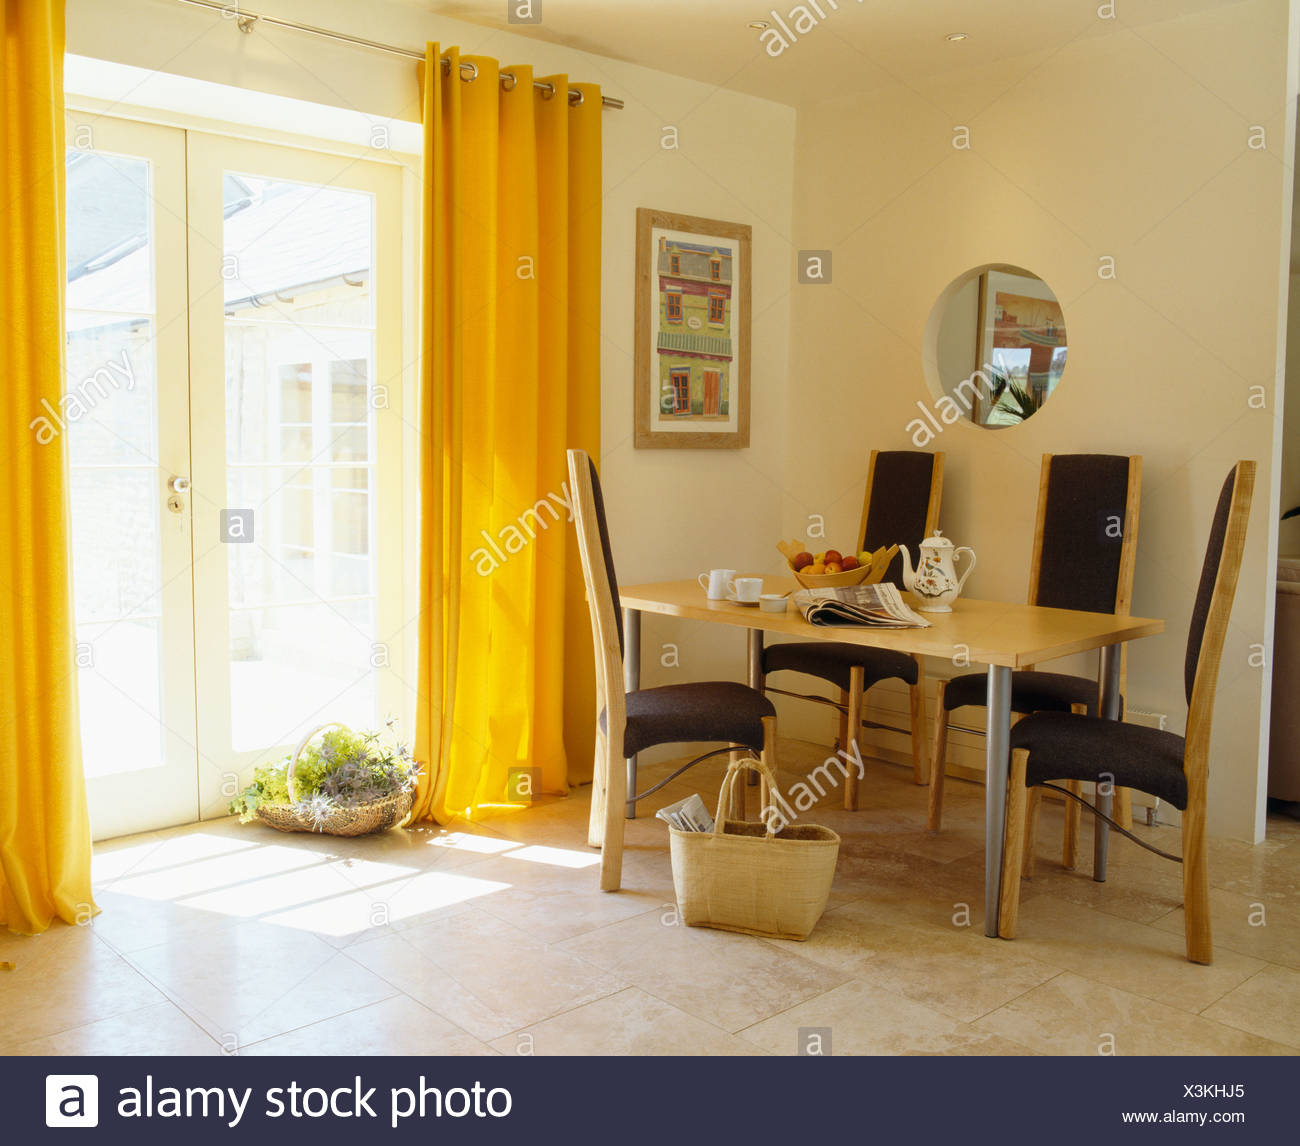 Yellow Curtains And Limestone Flooring In Modern Dining Room With Tall Back Chairs At Simple Table Stock Photo Alamy